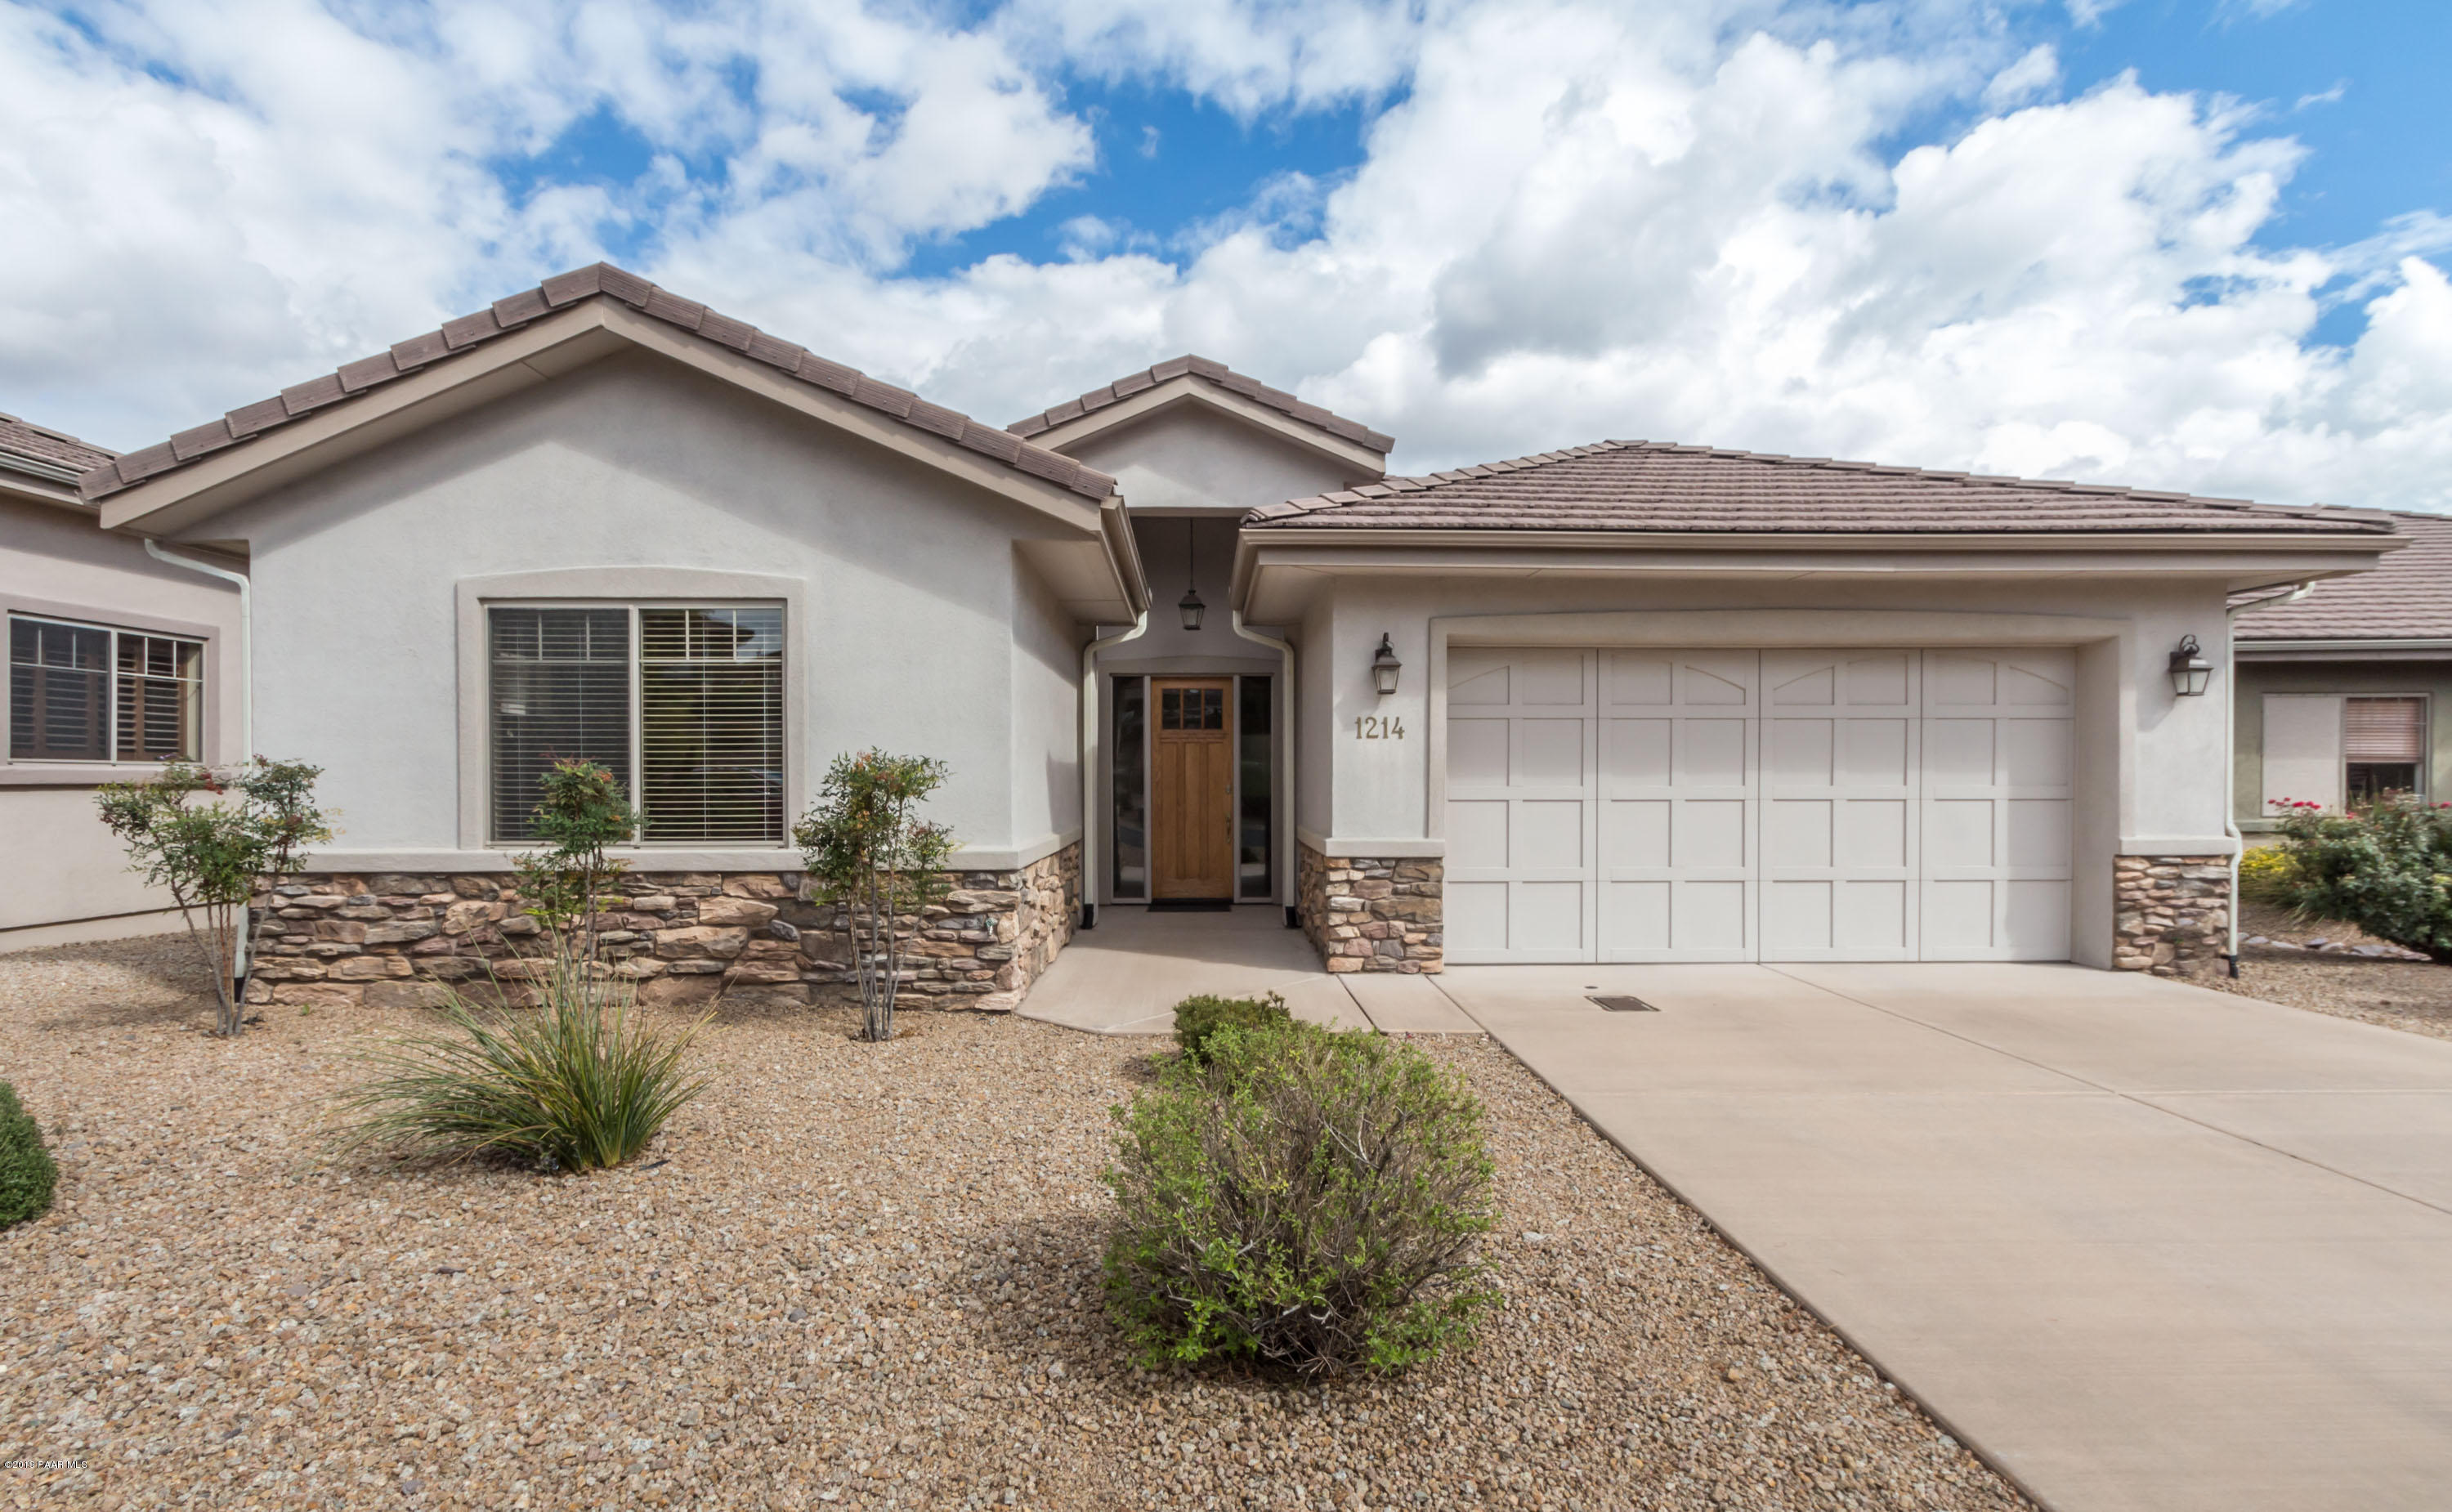 Photo of 1214 Pebble Springs, Prescott, AZ 86301